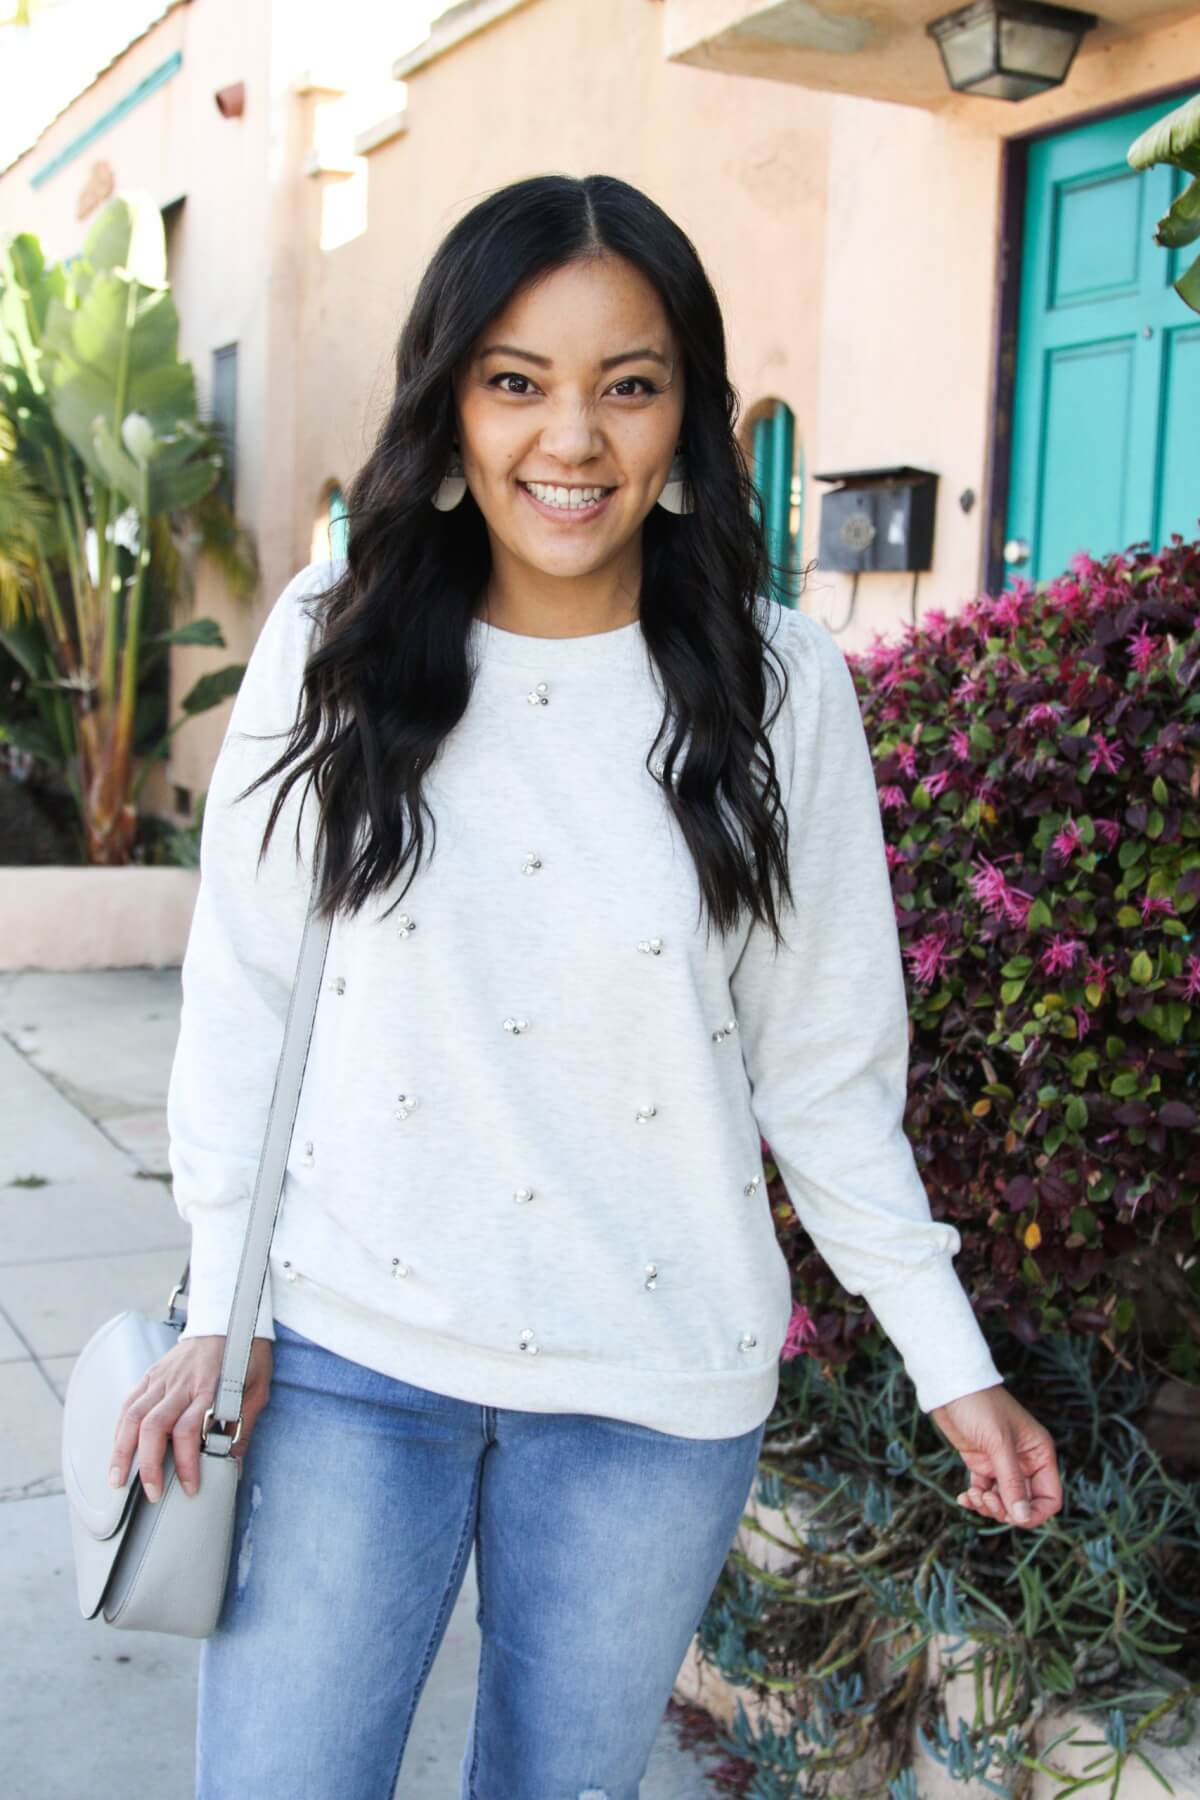 casual spring outfit: embellished sweatshirt, girlfriend jeans, gray purse, white earrings